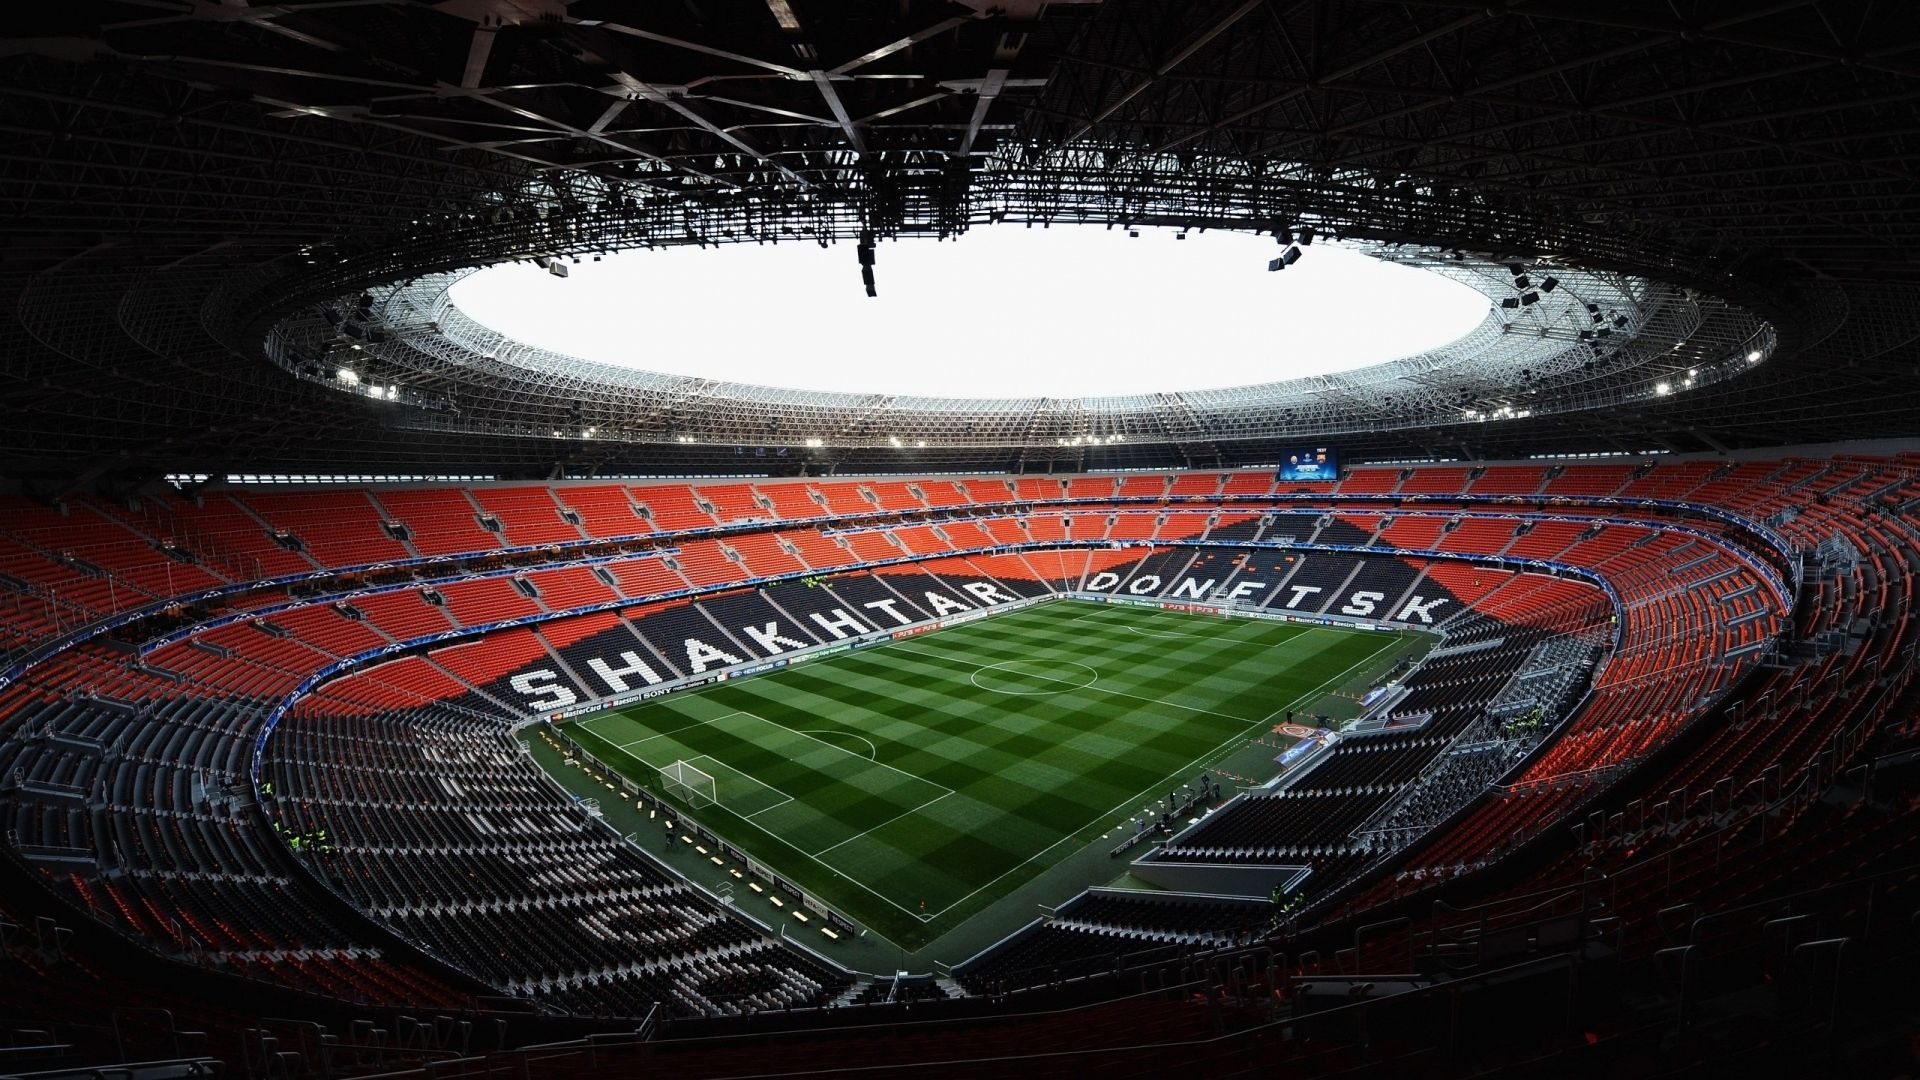 Shakhtar Donetsk Stadium Wallpaper Stadium Wallpaper Arena Football Football Stadiums